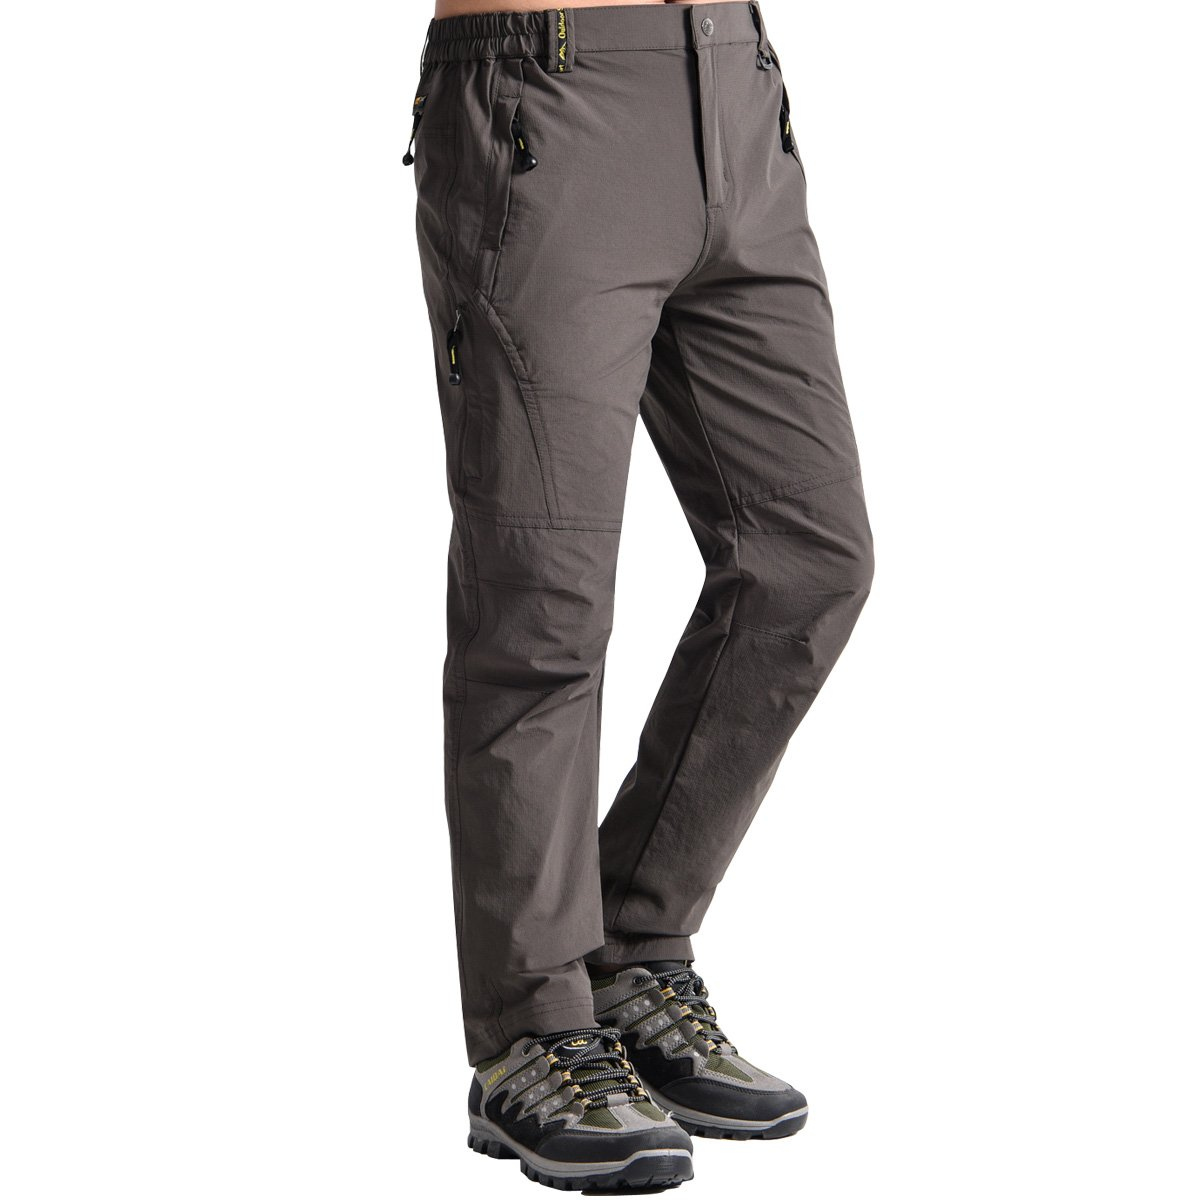 Fung-wong Men's Outdoor Quick Dry Lightweight Hiking Fishing Cargo Work Pant, Deep Grey, Small